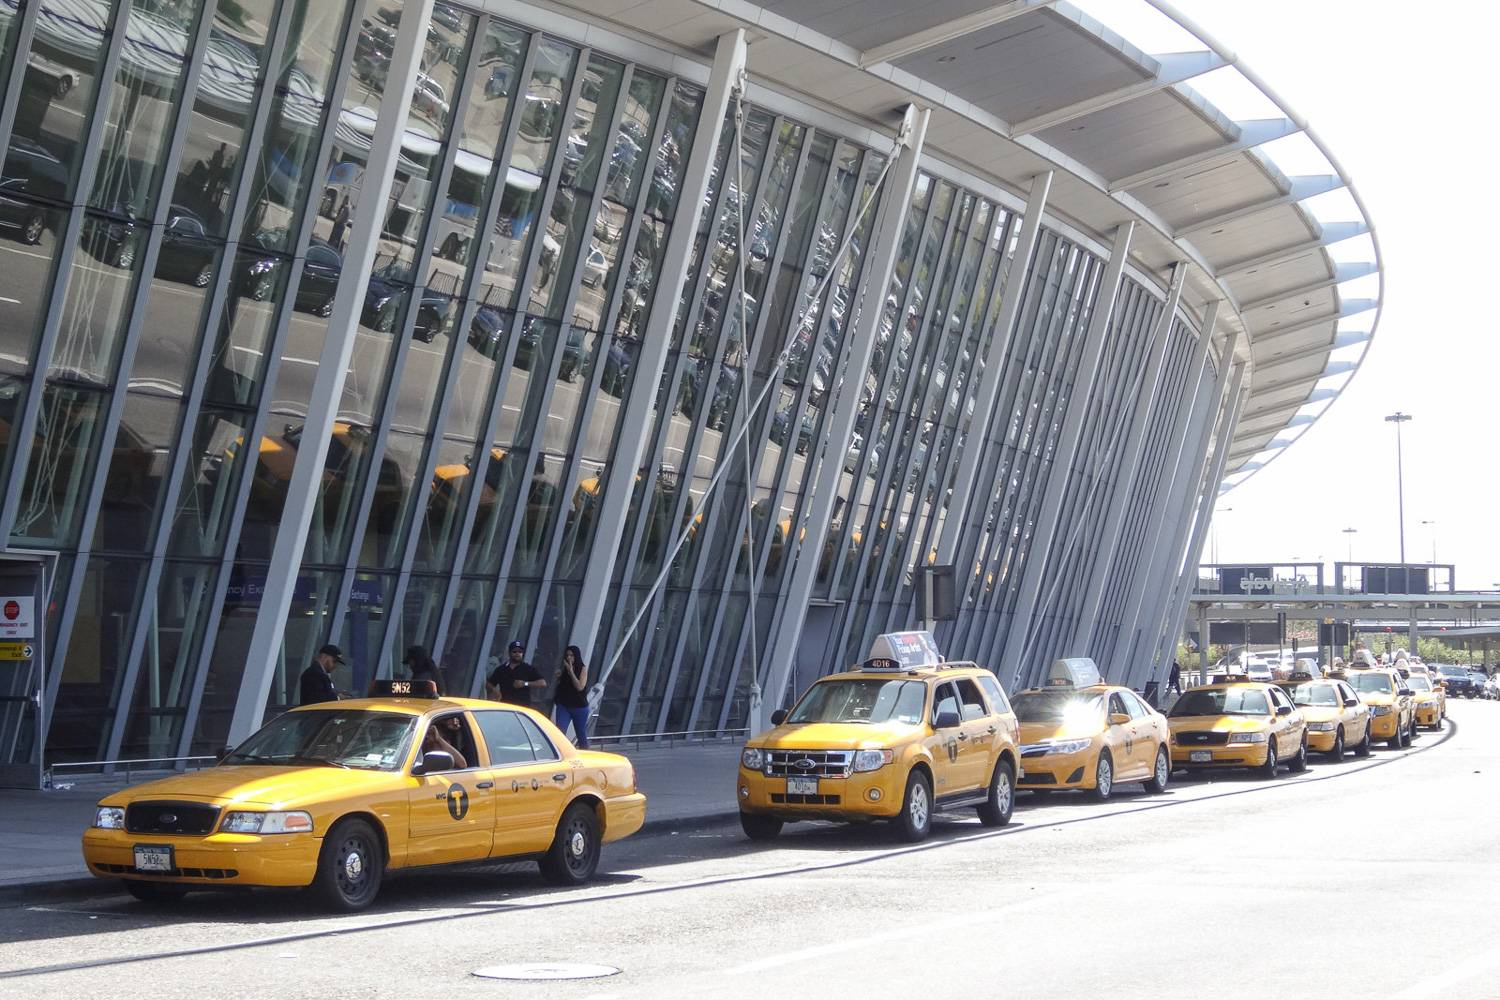 Photo des taxis jaunes de New York attendant de récupérer des passagers le long du trottoir de l'aéroport JFK.